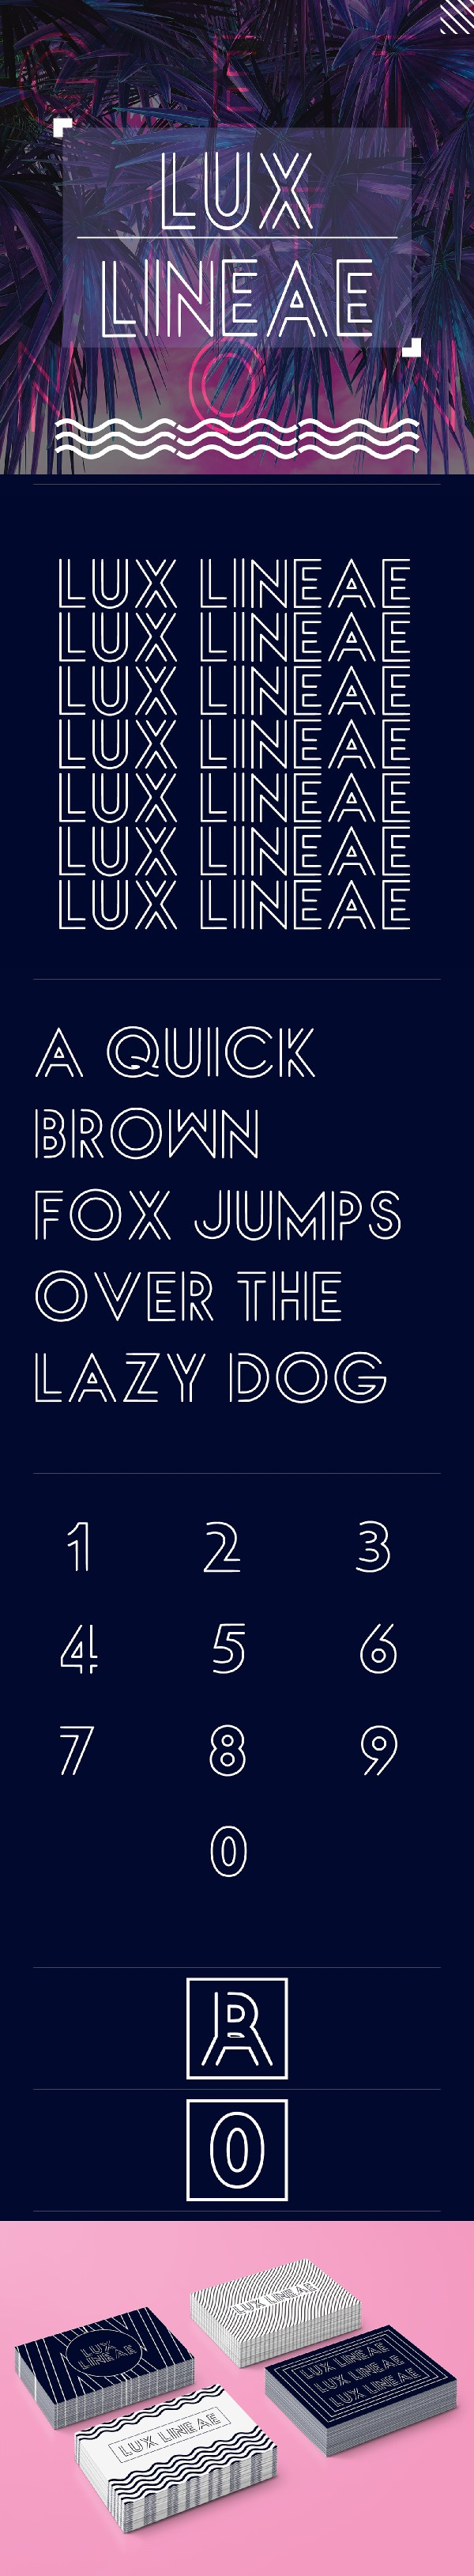 Lux Lineae Free Display Font